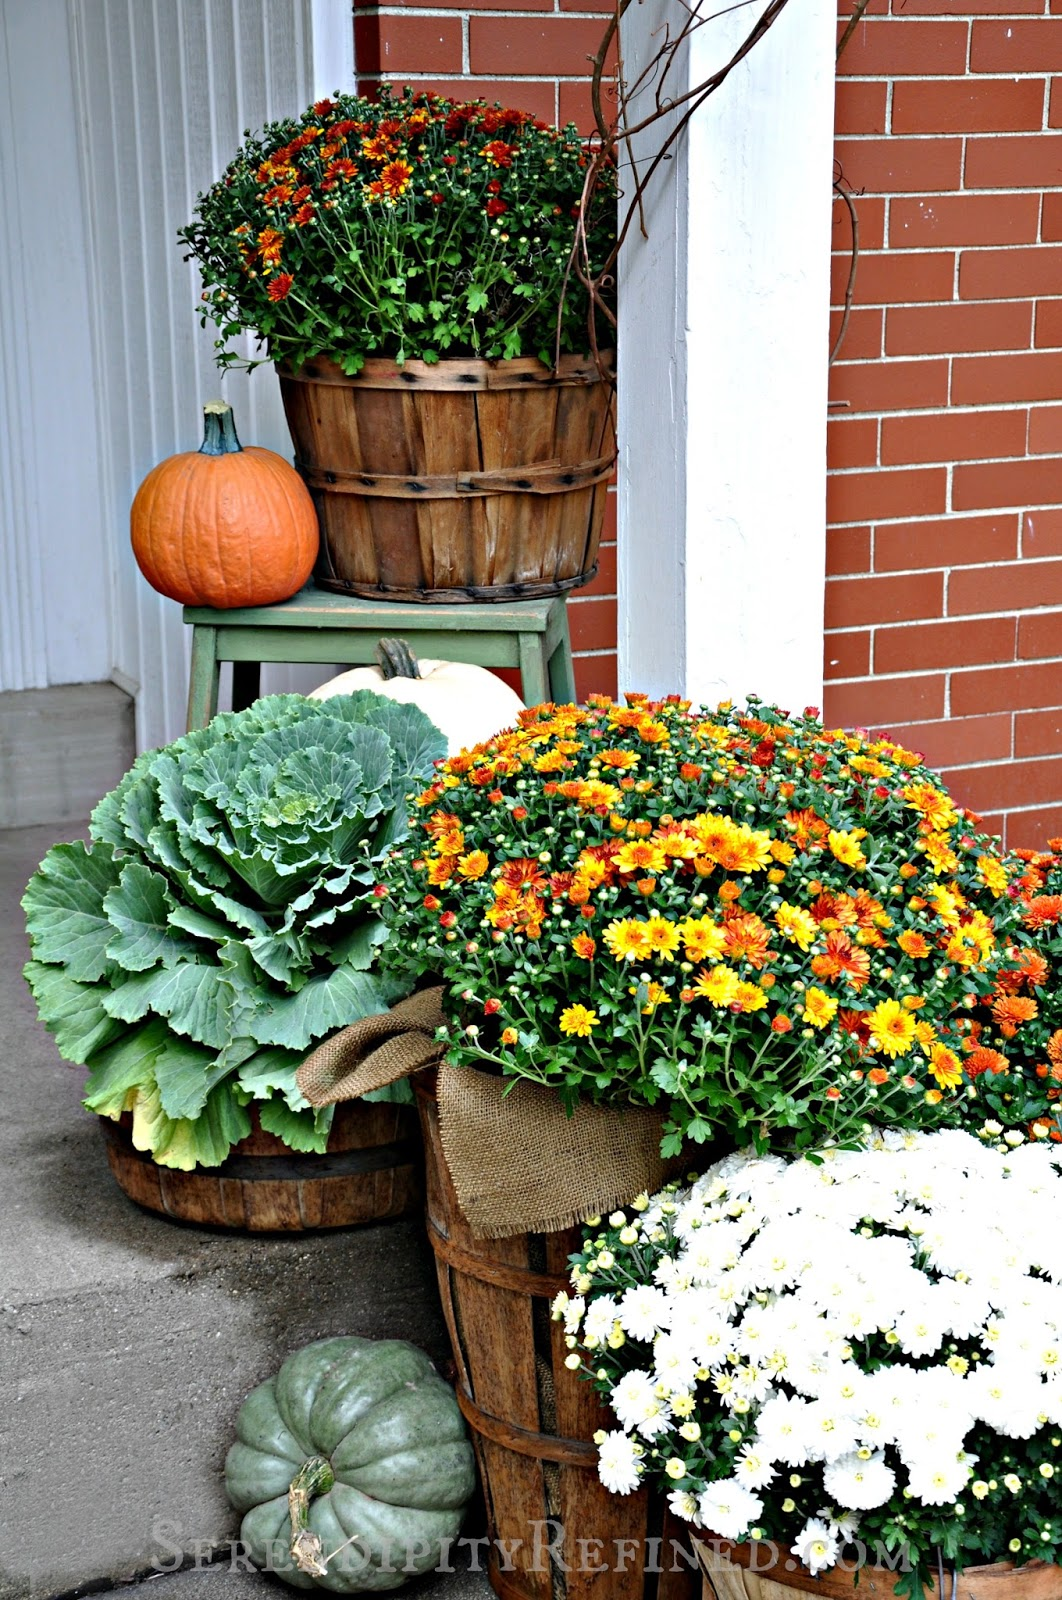 Serendipity Refined Blog Fall Harvest Porch Decor With